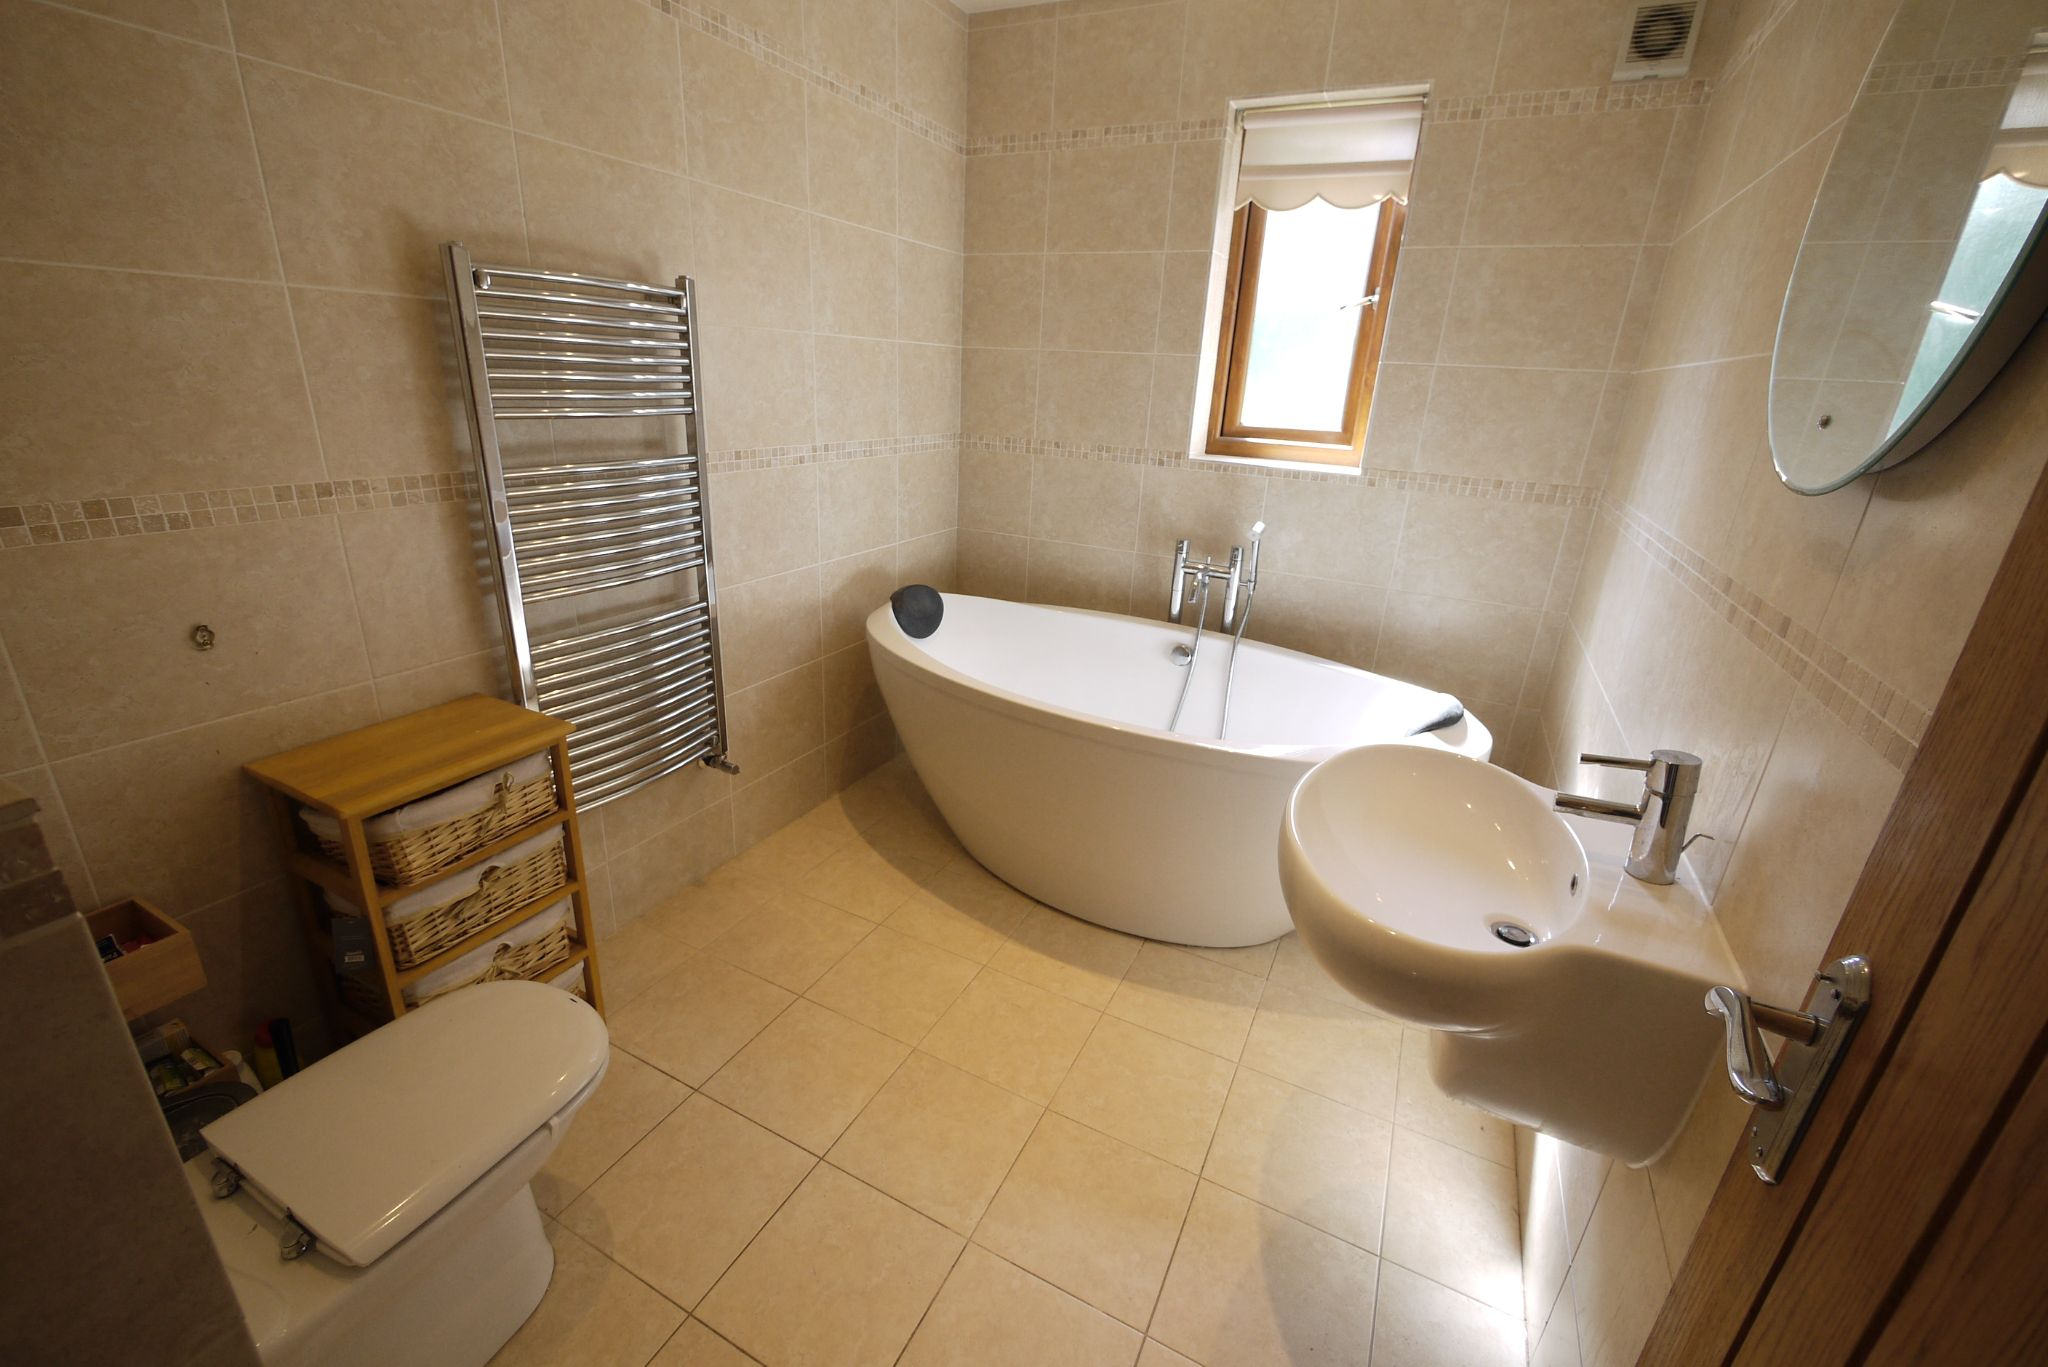 5 bedroom detached house For Sale in Brighouse - Photograph 11.